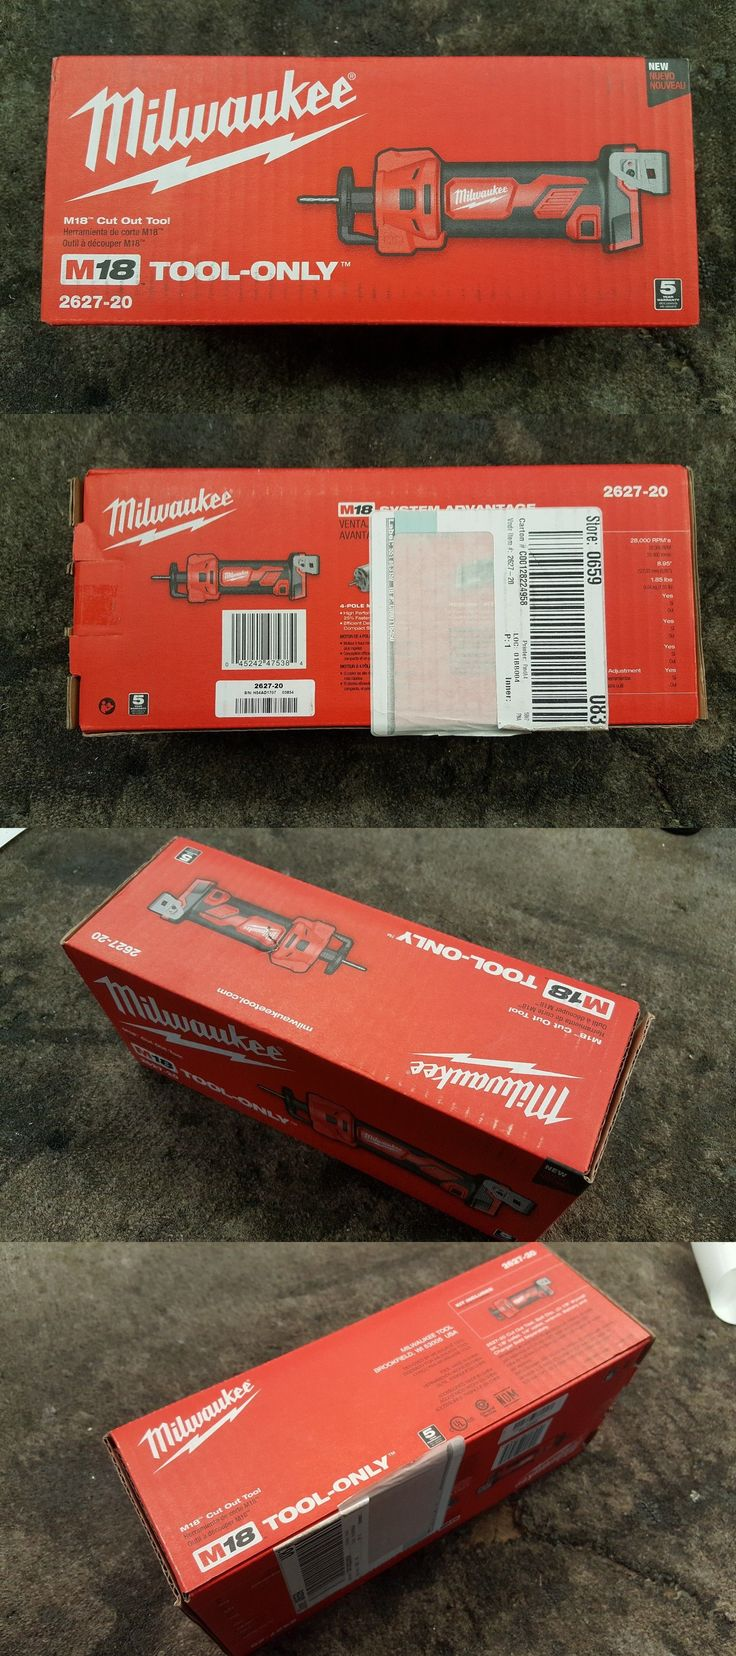 Rotary Tools 177003: *New* Milwaukee M18™ Cut Out Tool (Tool Only) 2627-20 -> BUY IT NOW ONLY: $79.95 on eBay!